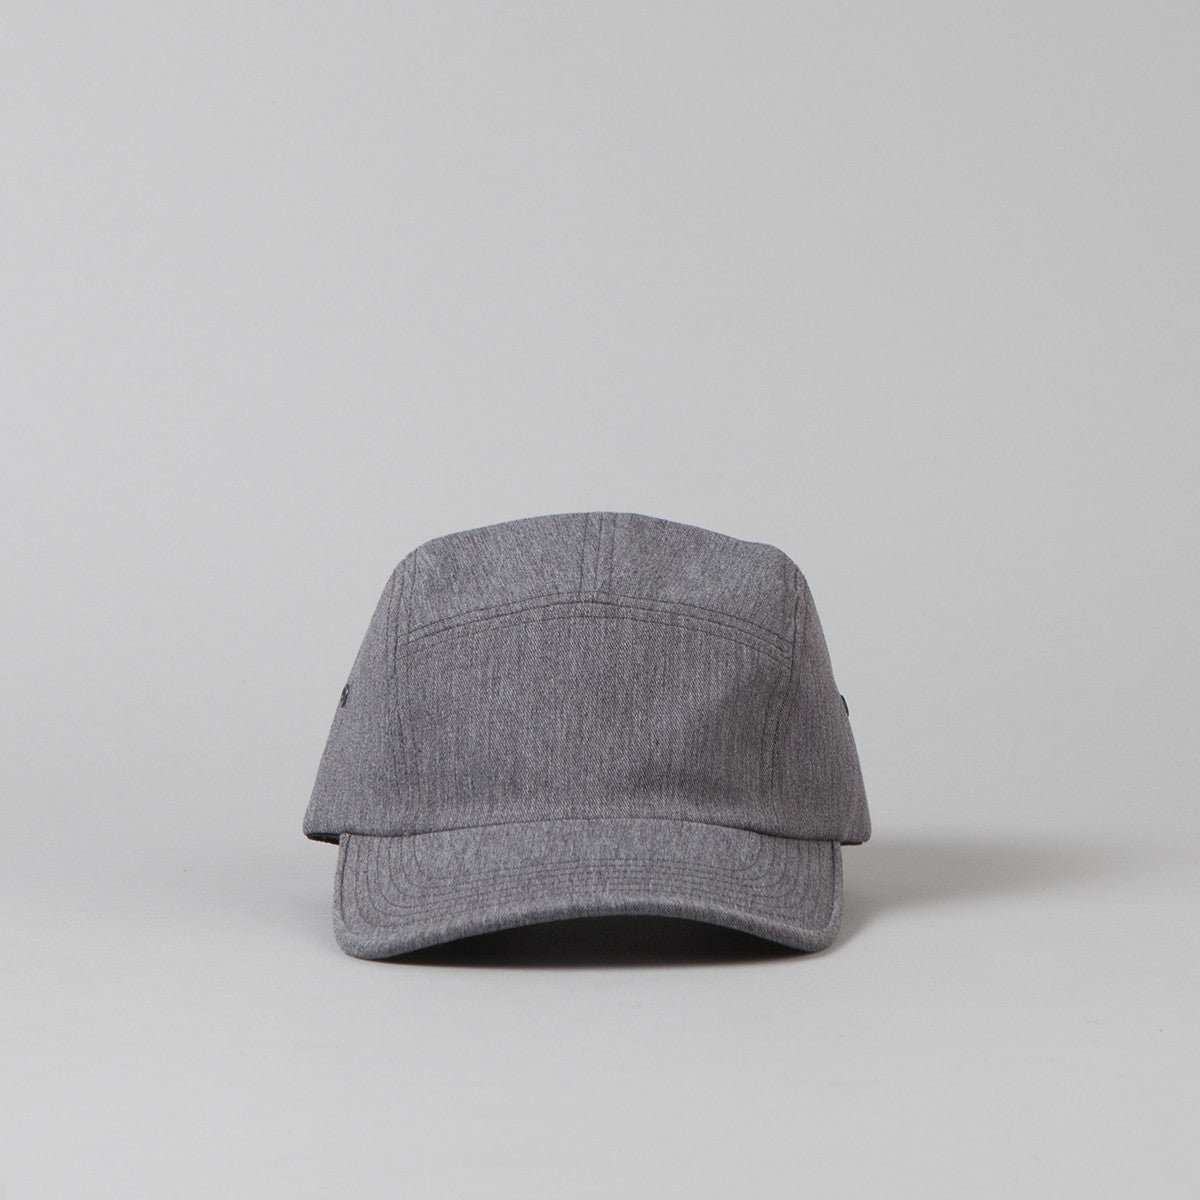 Flatspot Twill Jockey Cap - Heather Grey